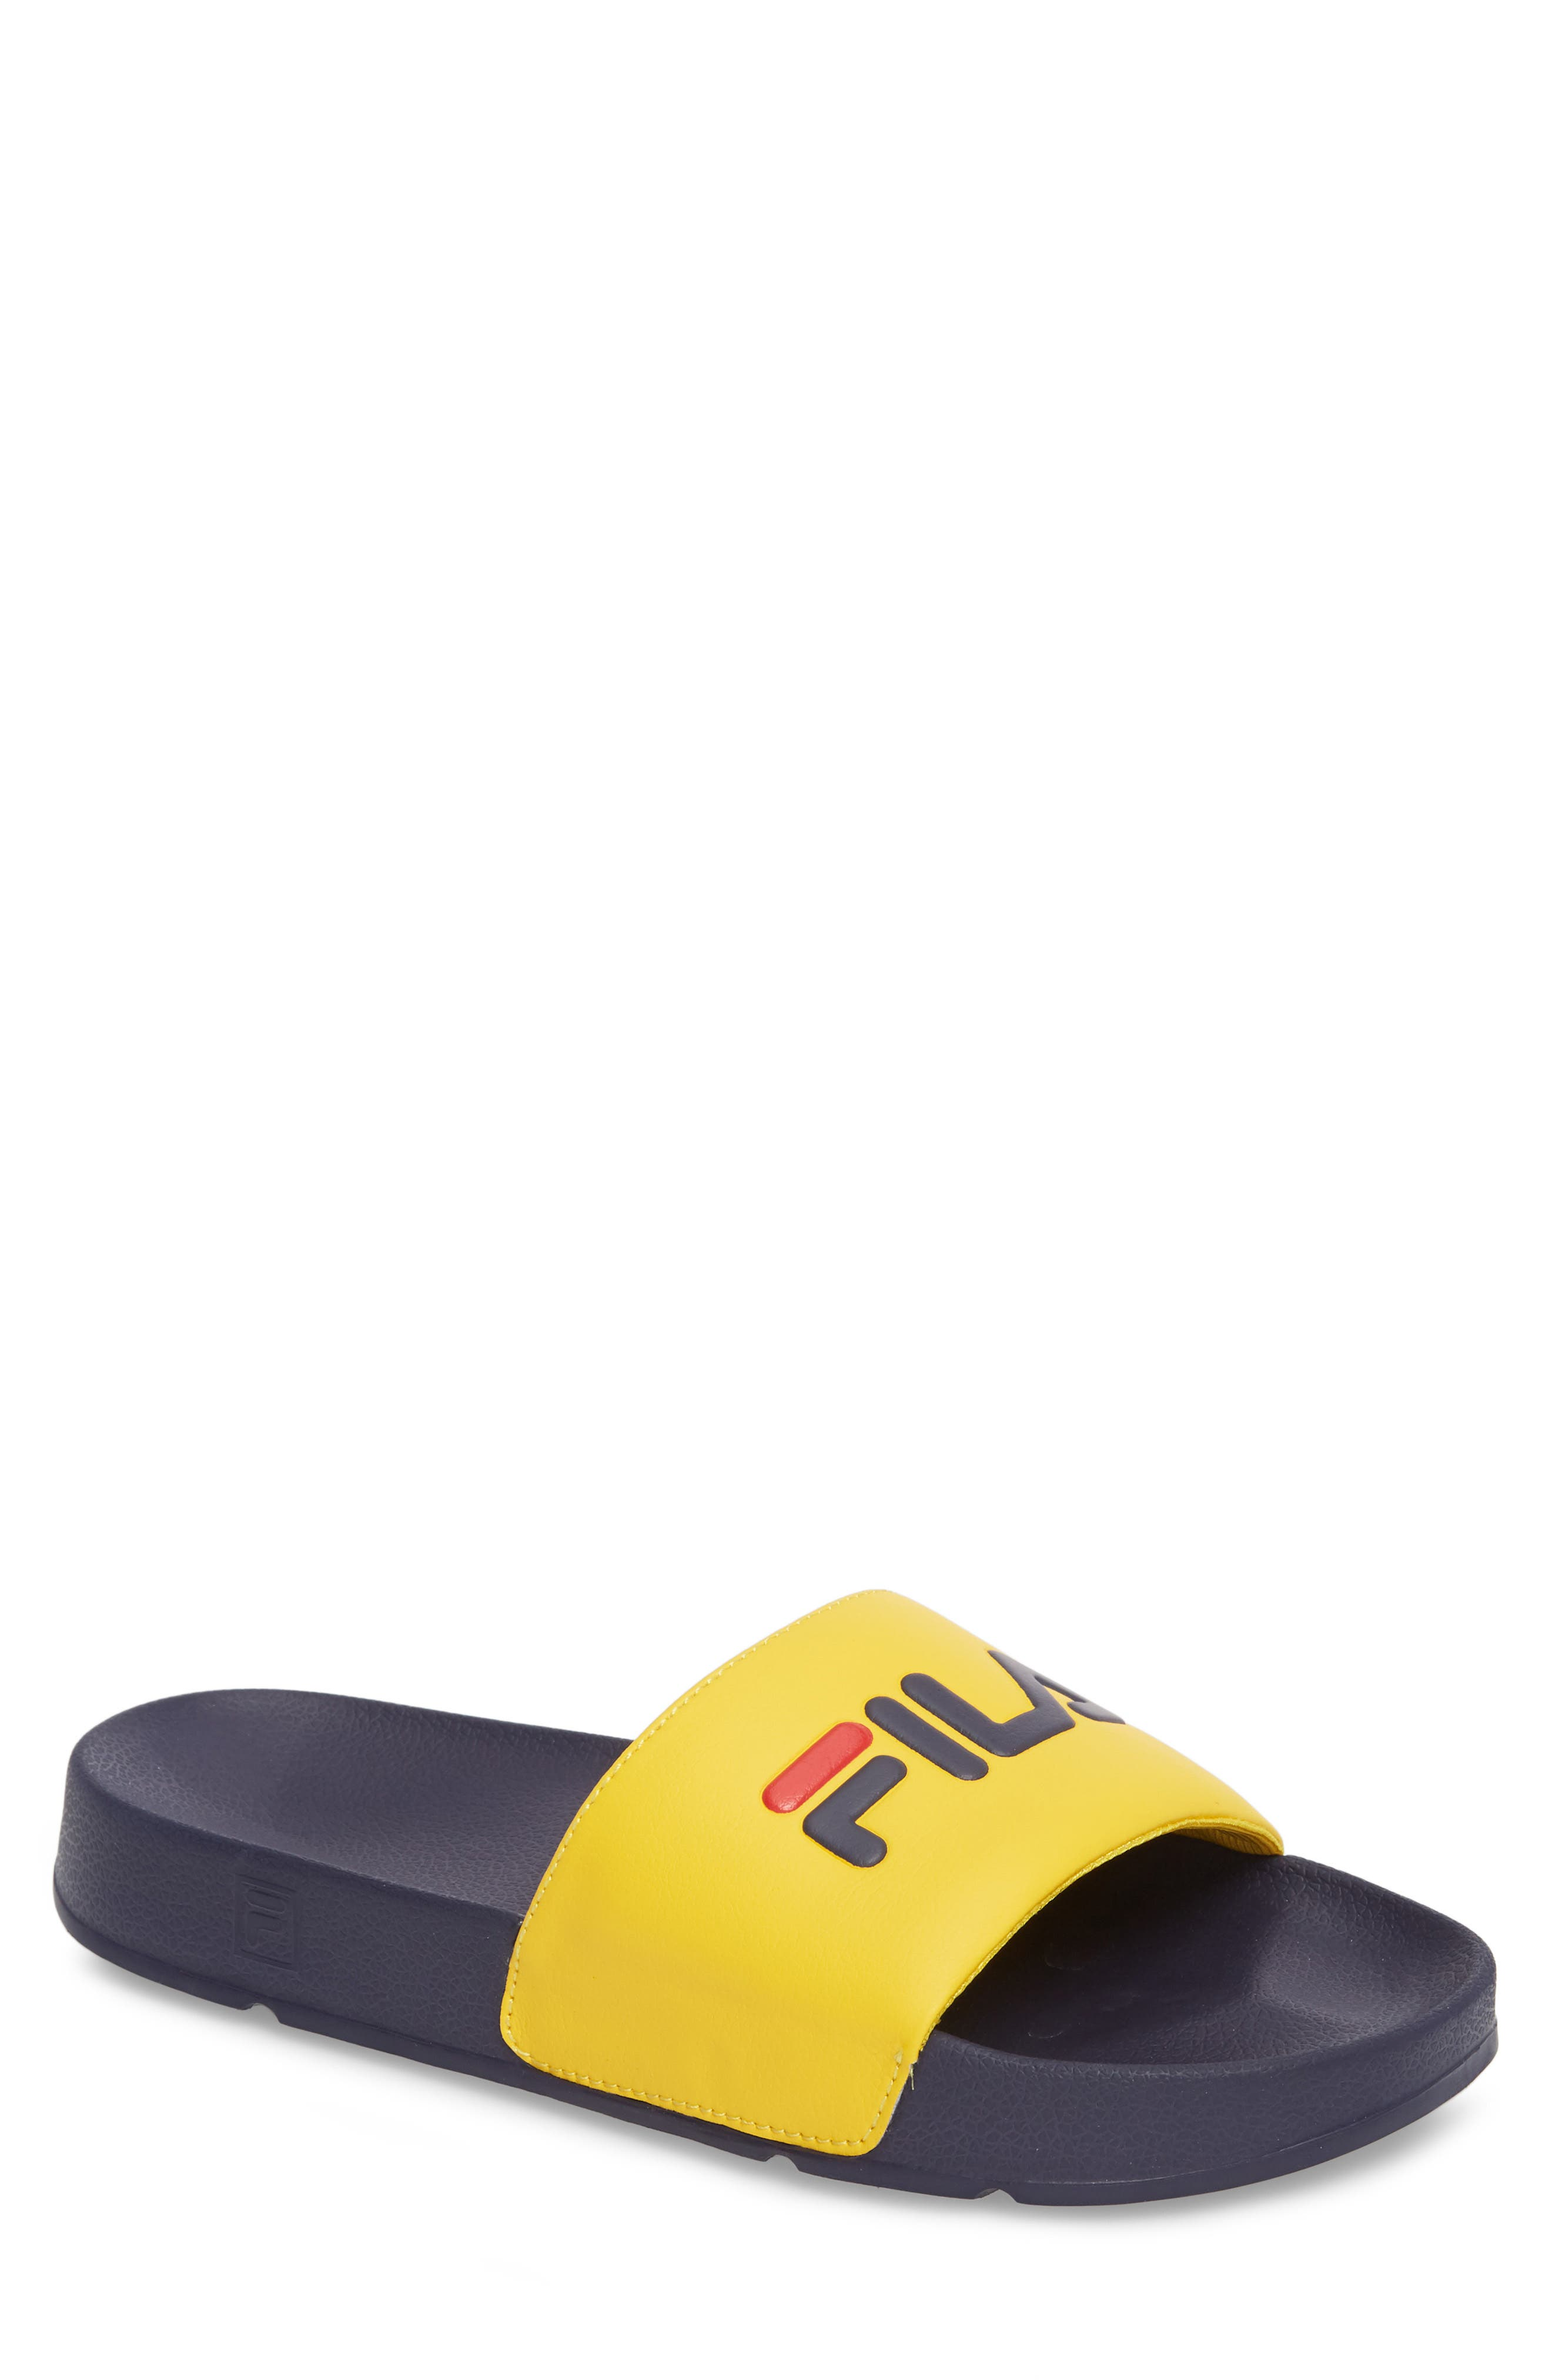 FILA Sport Slide (Men)